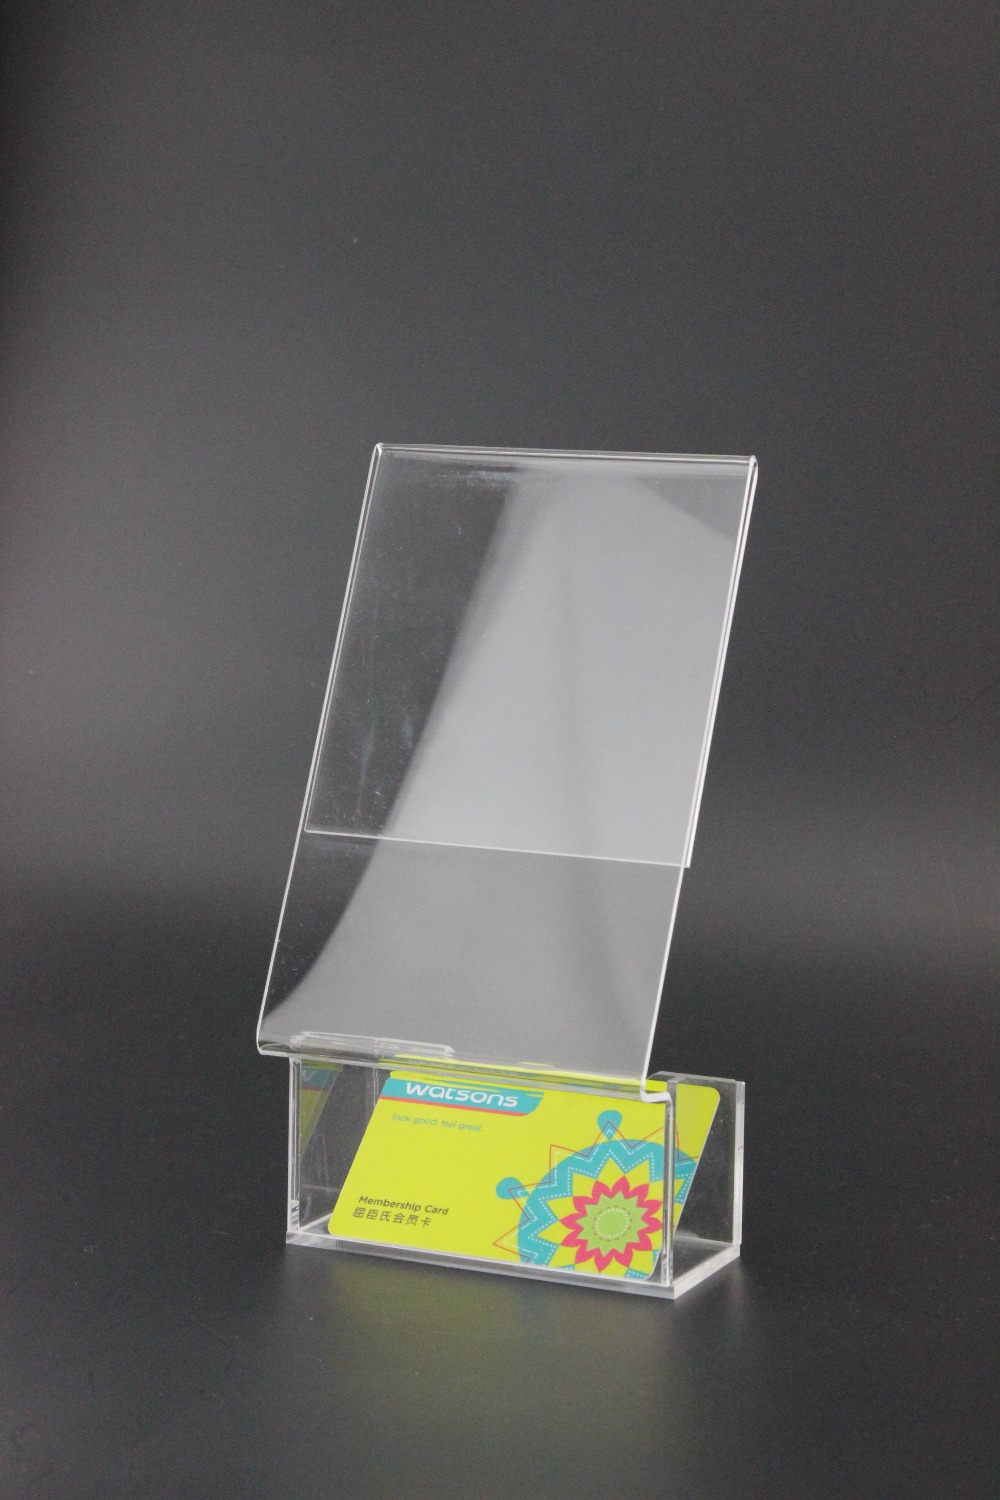 10 Pcs Acrylic Business Name Card Holder Display Box Office Exhibition Show  Label Holder Stand Desktoppany Brochure Holder